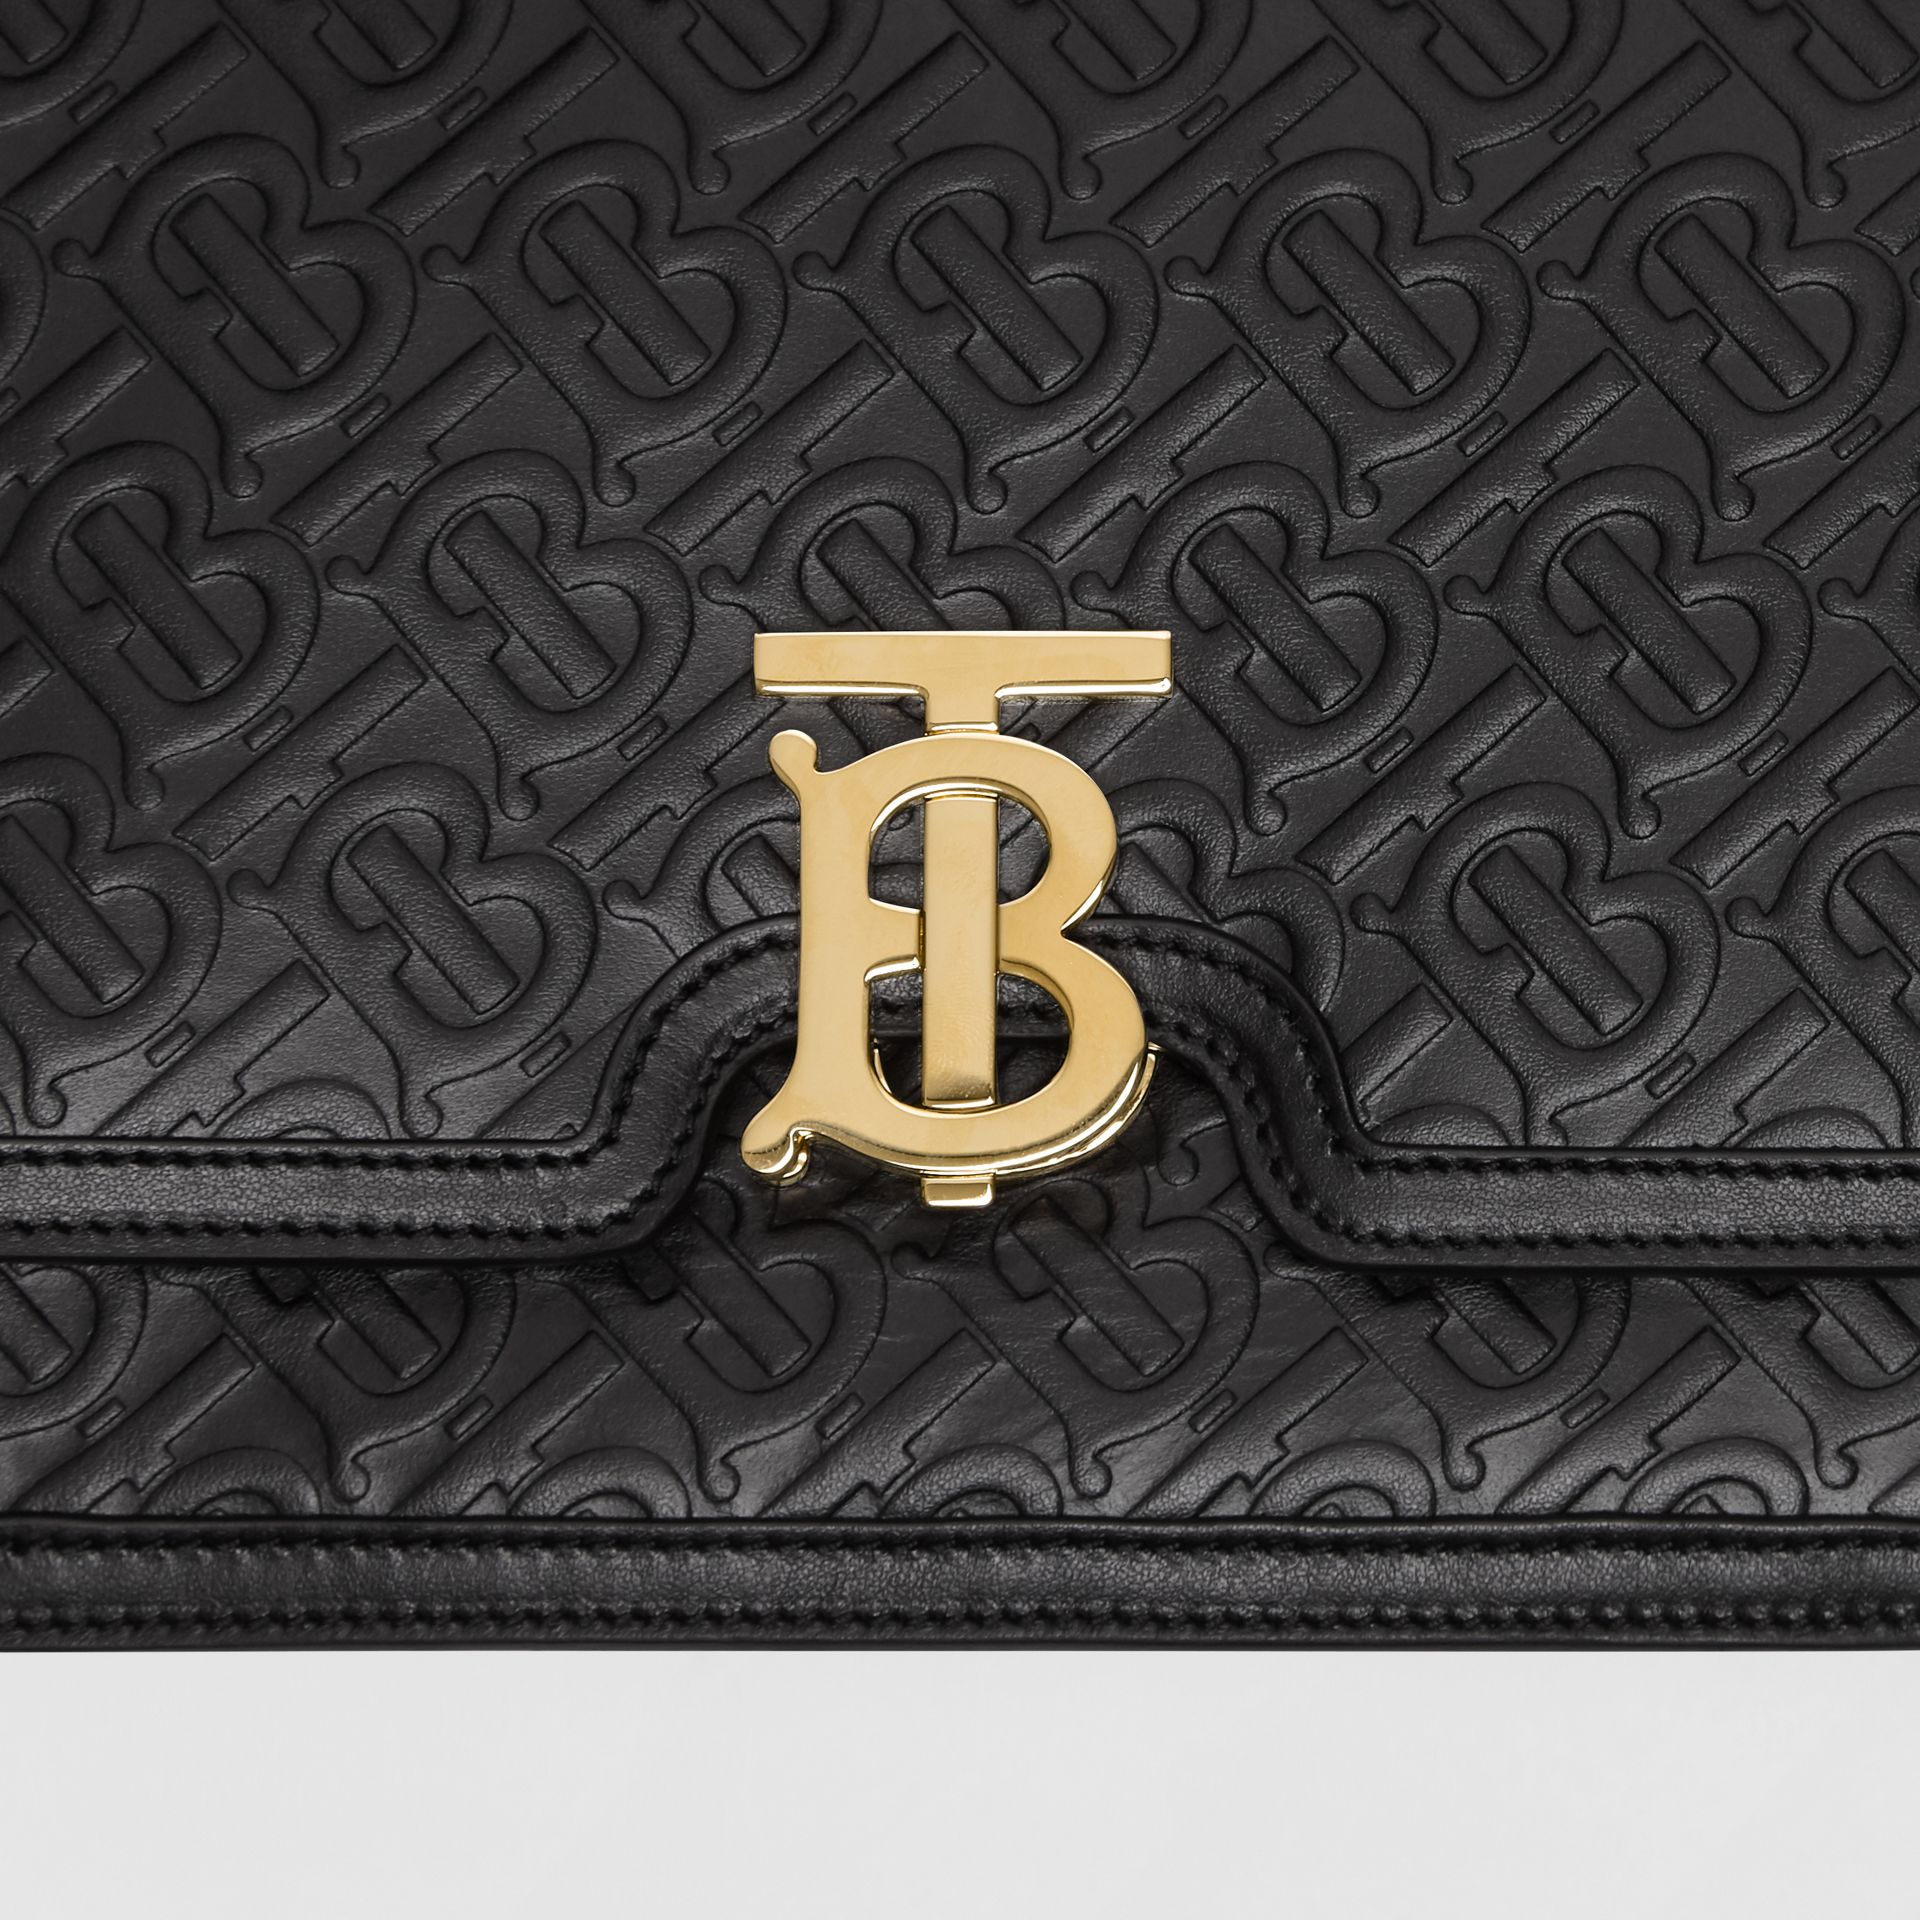 Medium Monogram Leather TB Bag in Black - Women | Burberry Canada - gallery image 1